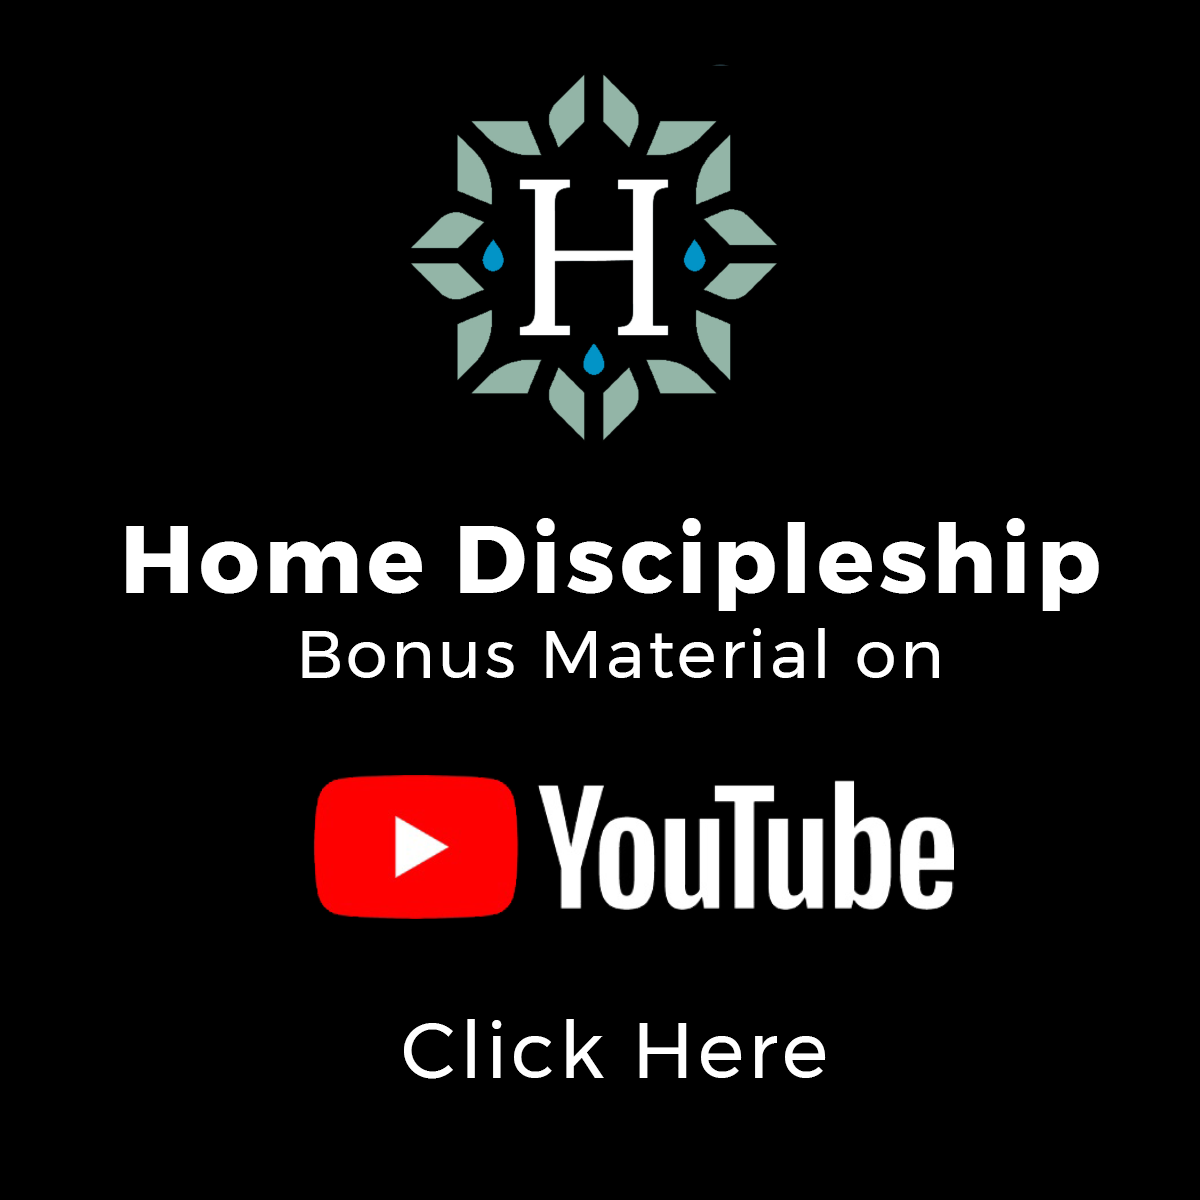 youtub home disciplship